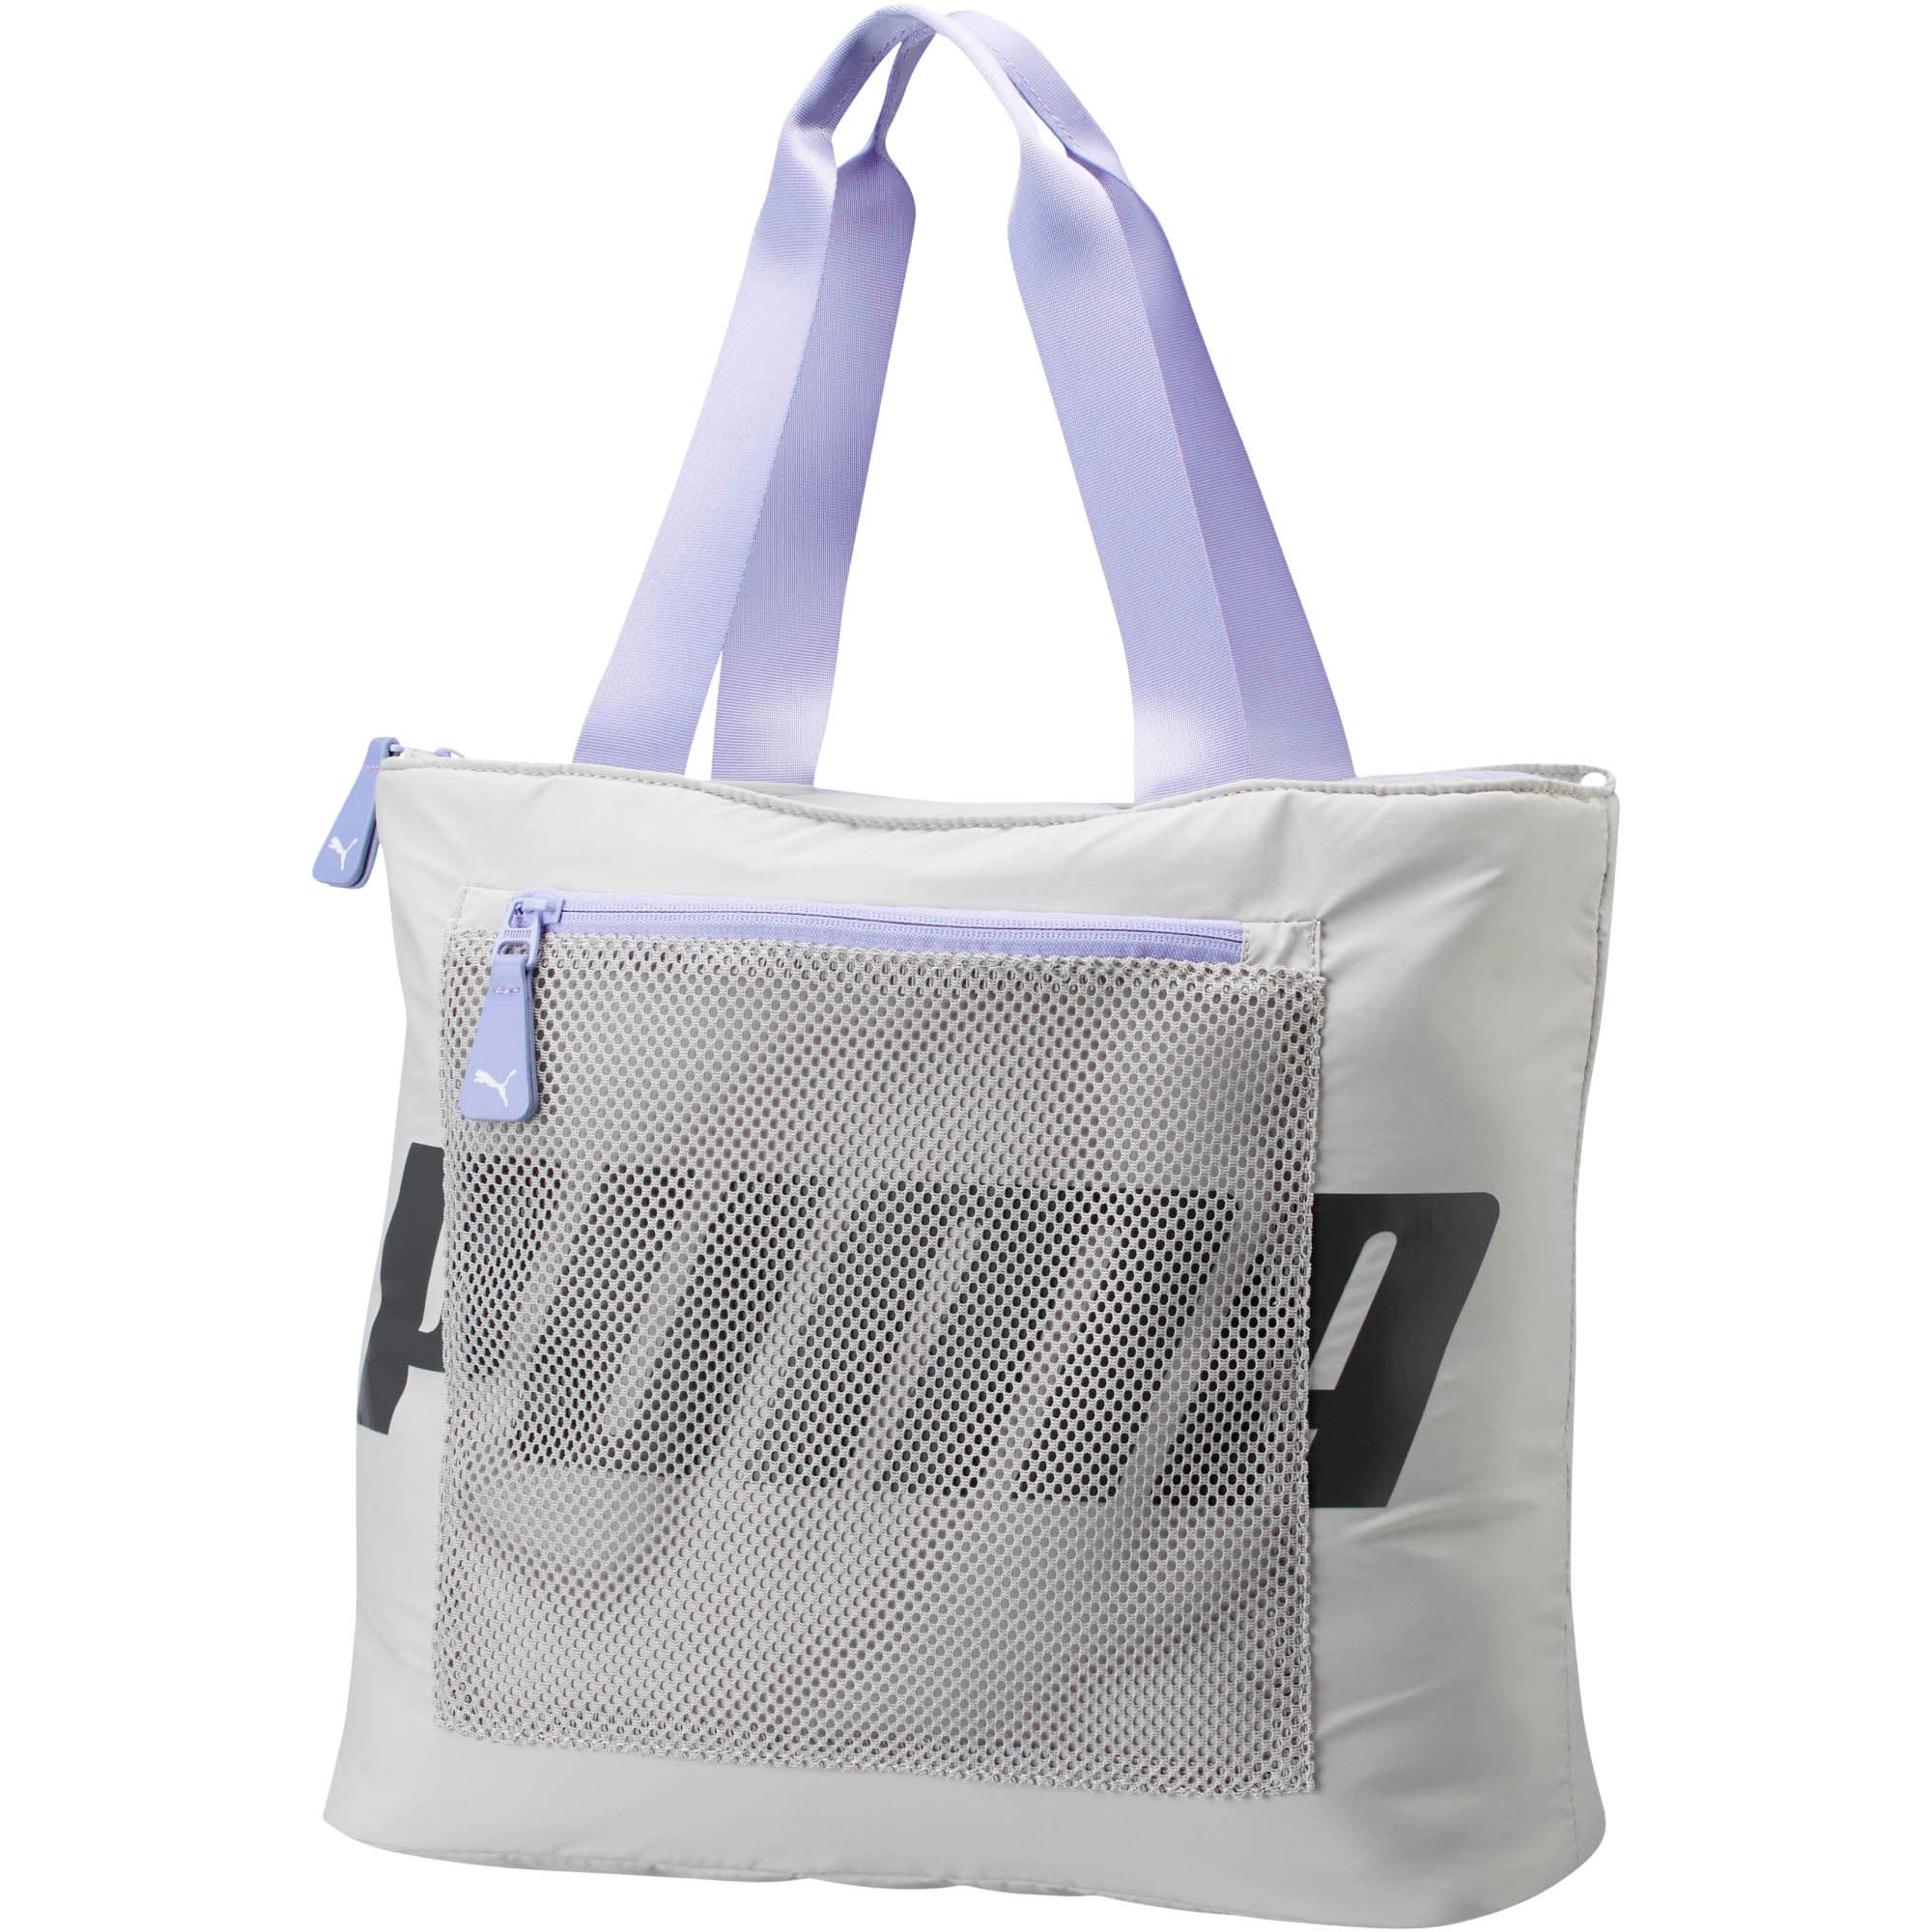 Thumbnail 1 of Vicky Tote, Grey/Purple, medium